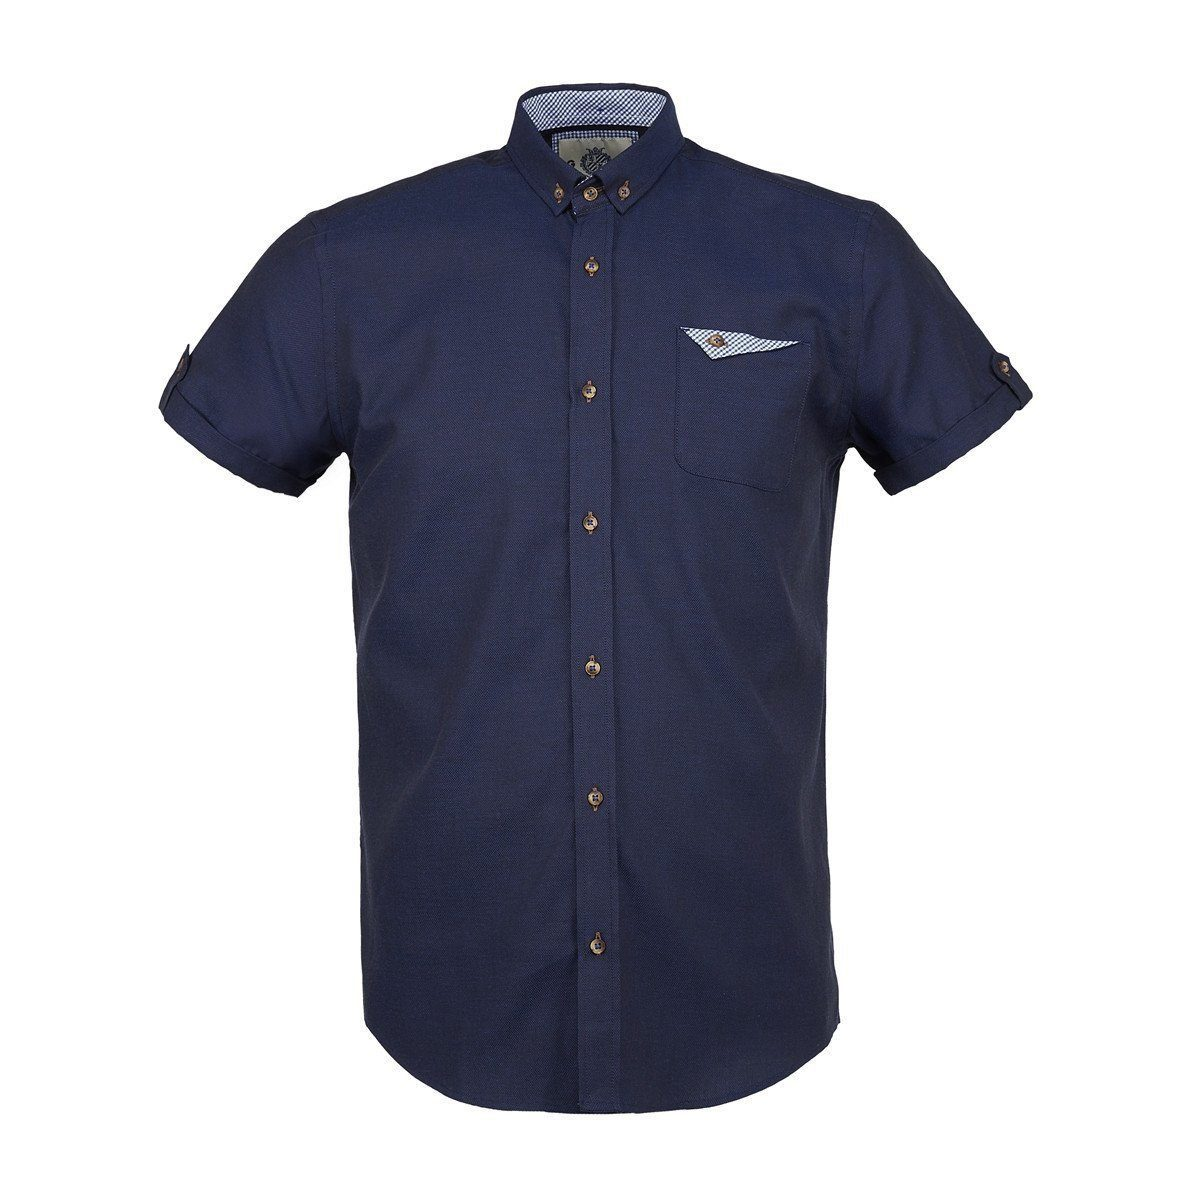 NAVY Short Sleeve Oxford Shirt - Leonard Silver